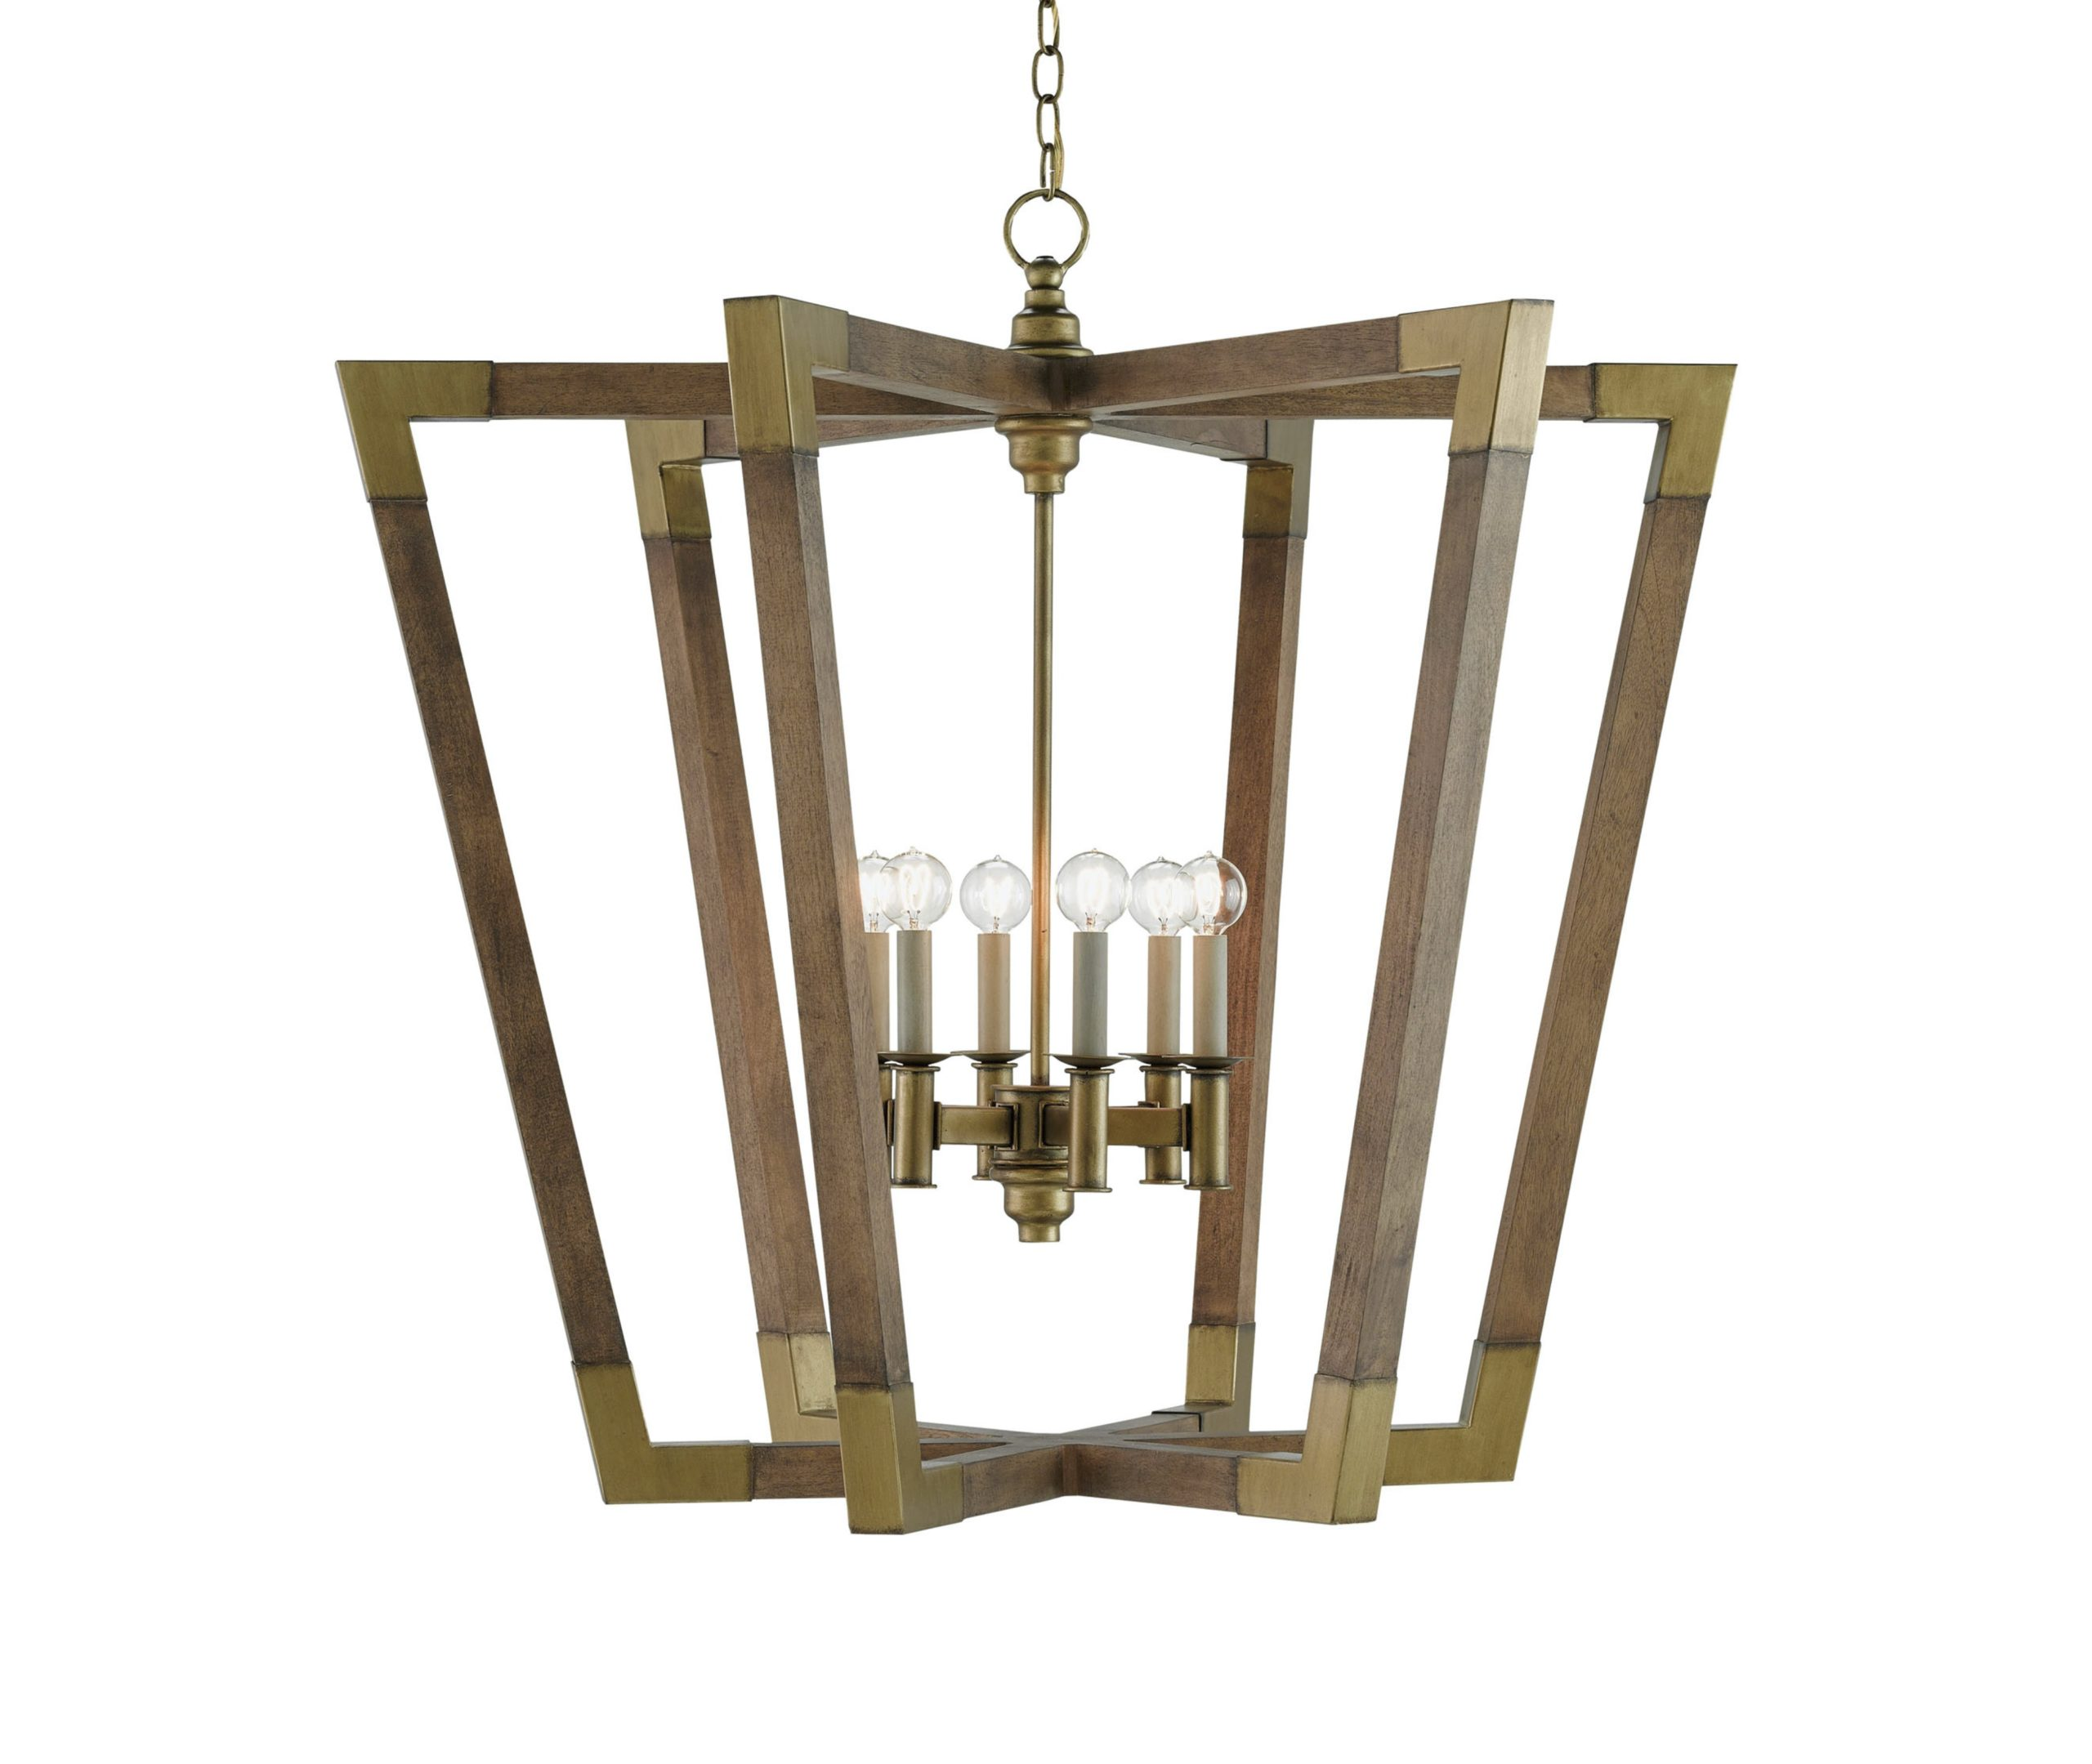 NYDC_WNWN_currey_and_co_products_bastian_large_lantern_9000-0008_